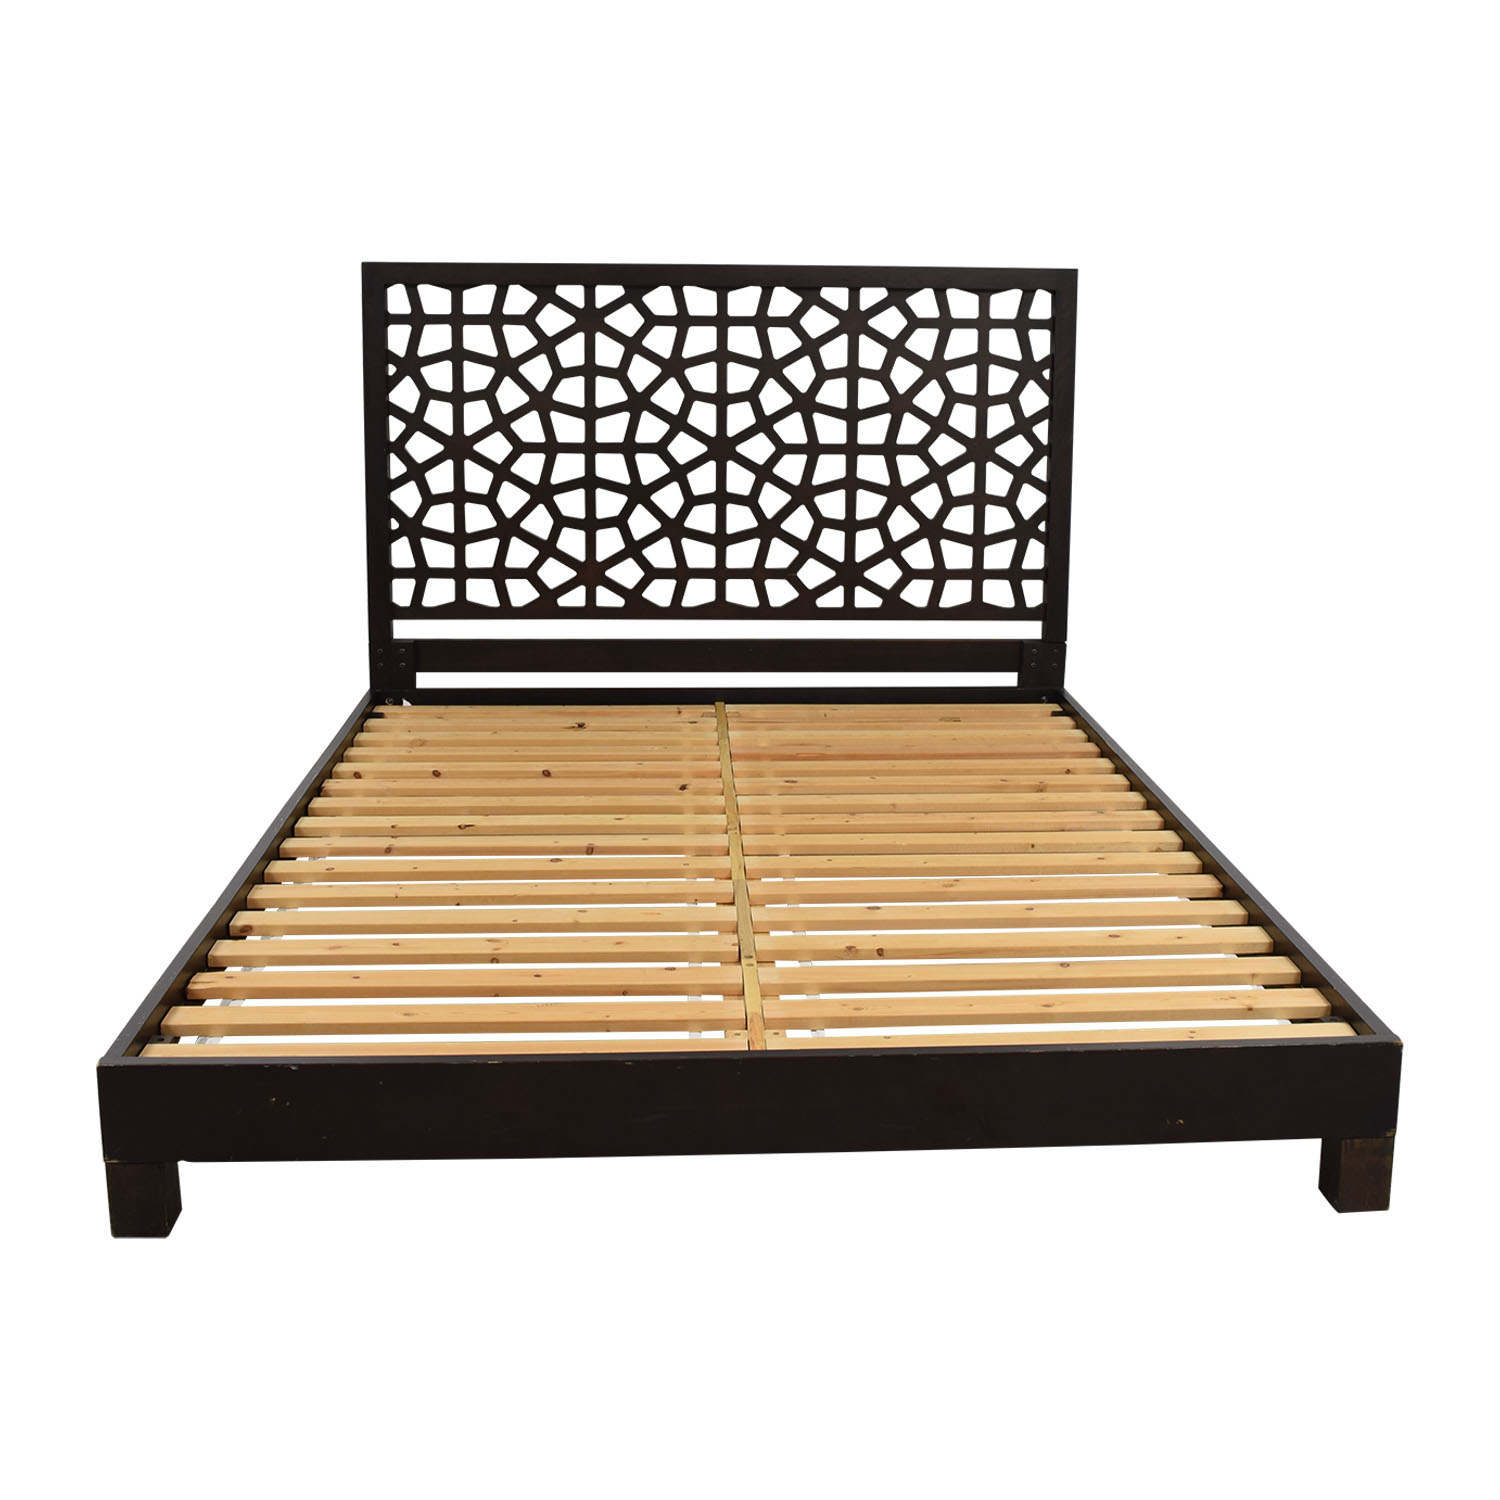 Queen Size Beds For Sale Beds Used Beds For Sale